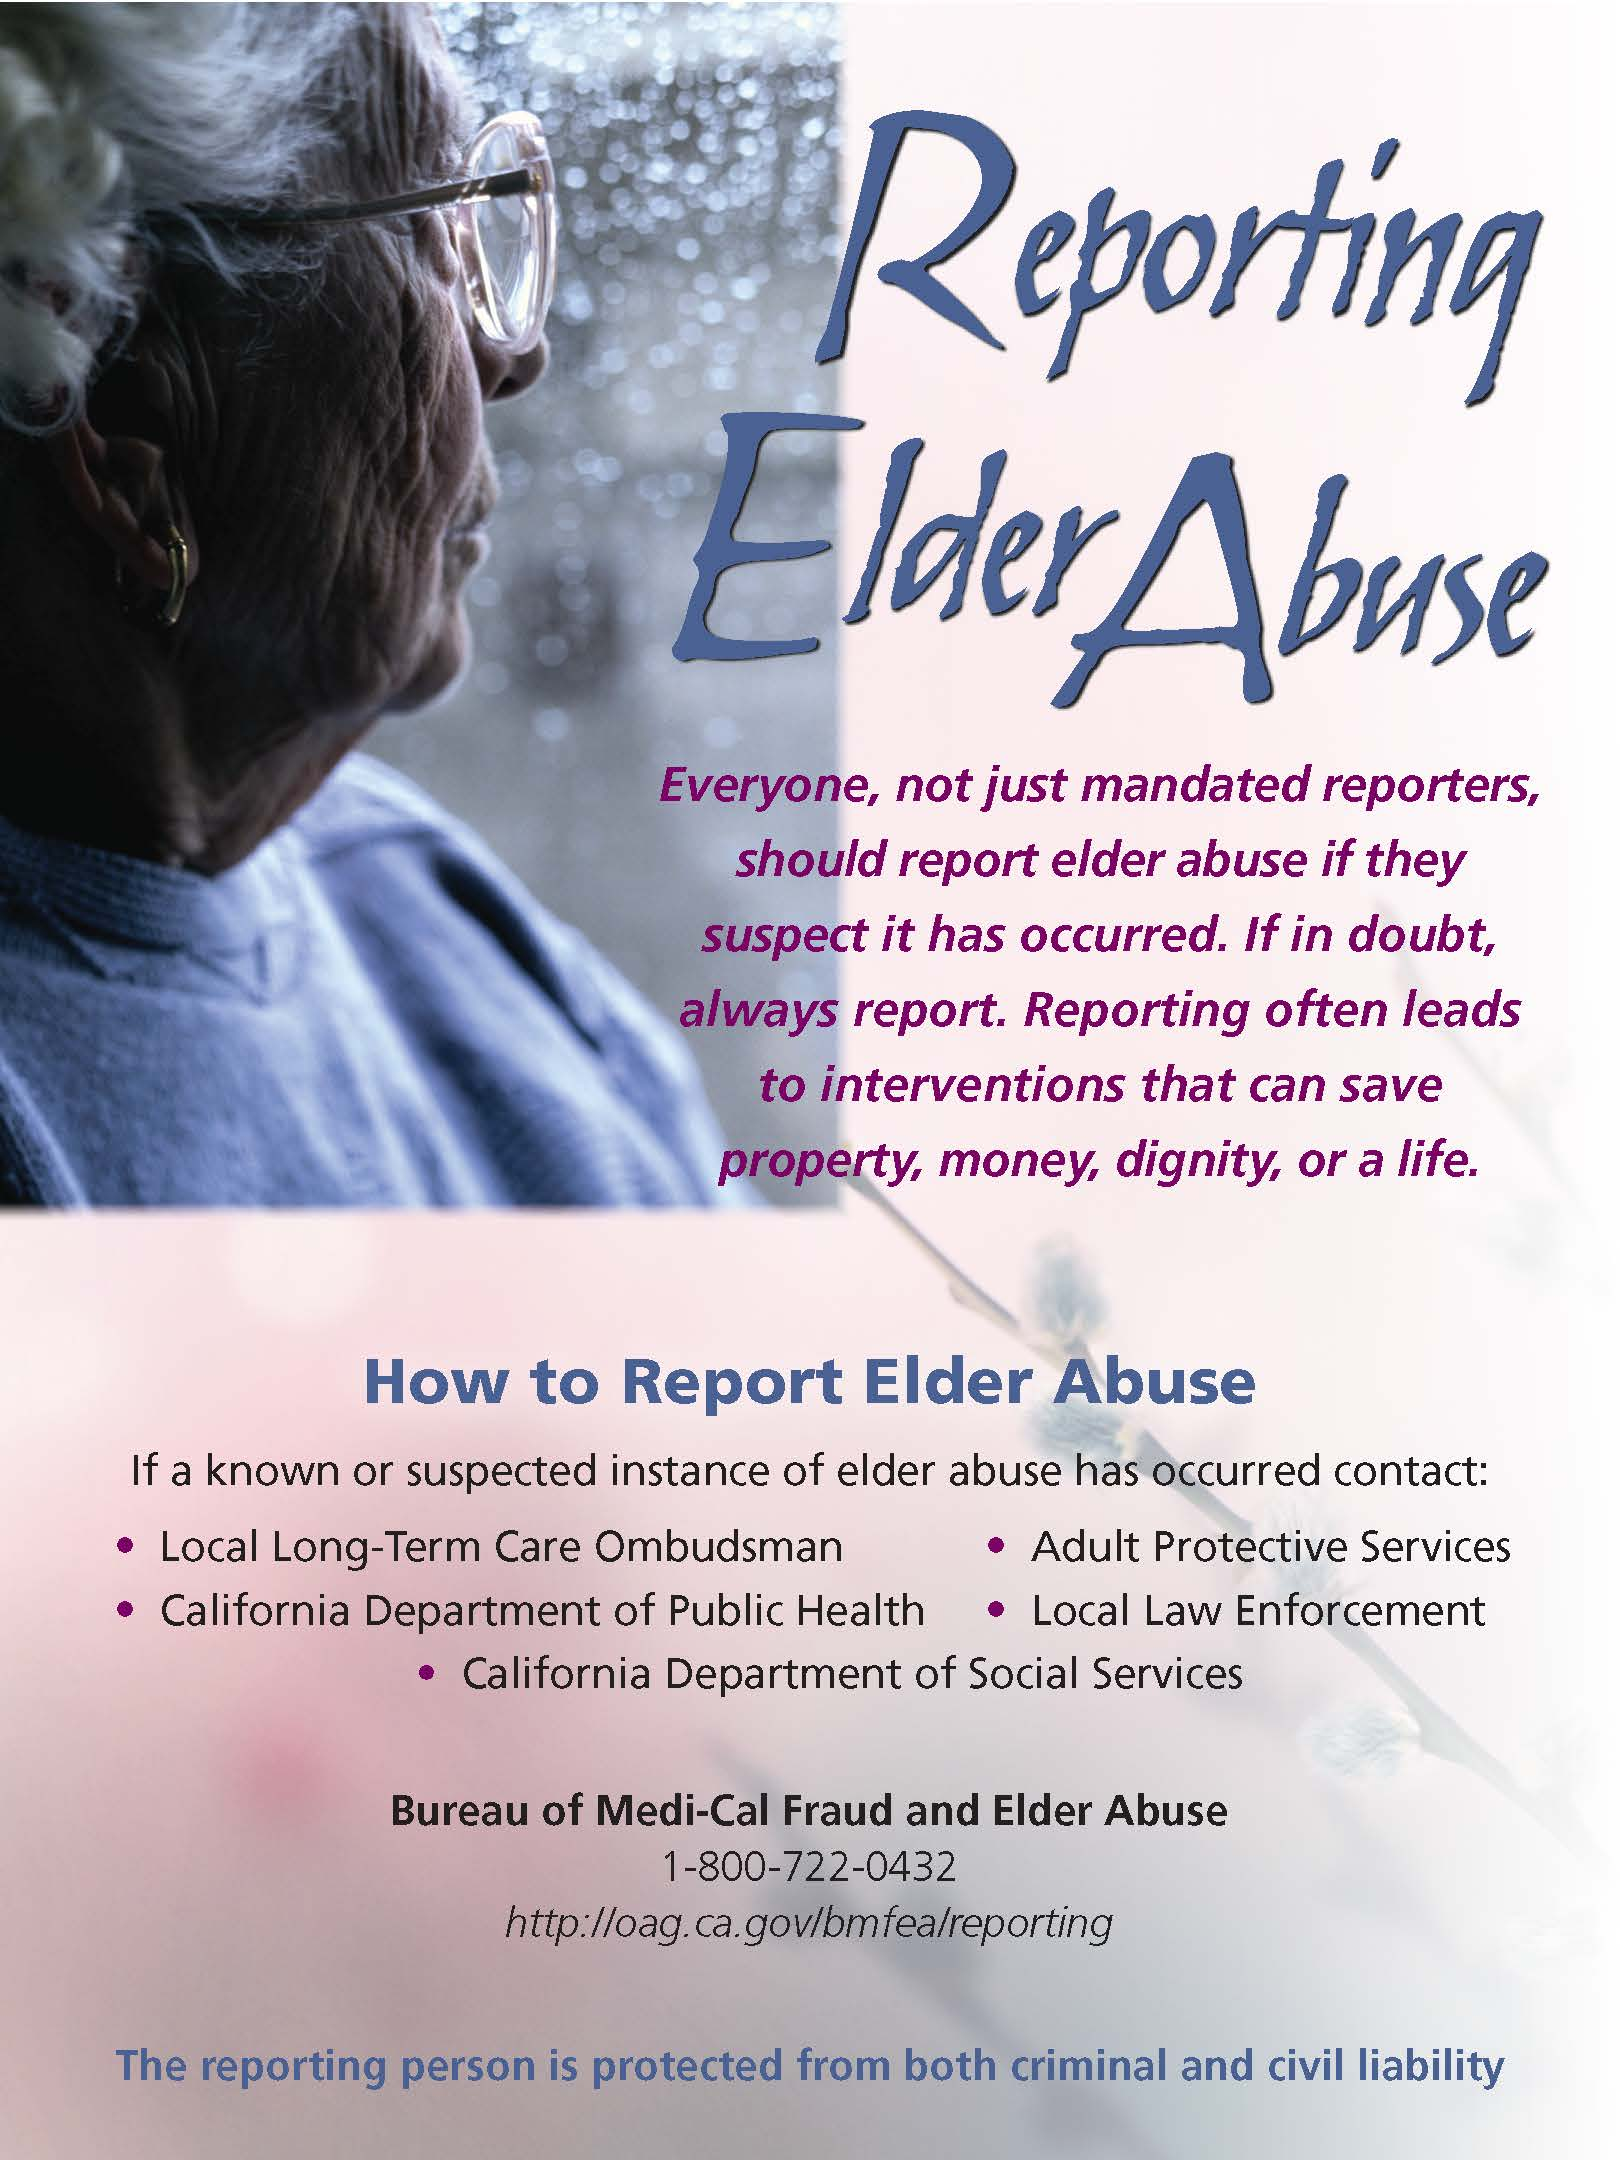 Elder Abuse - How to Report